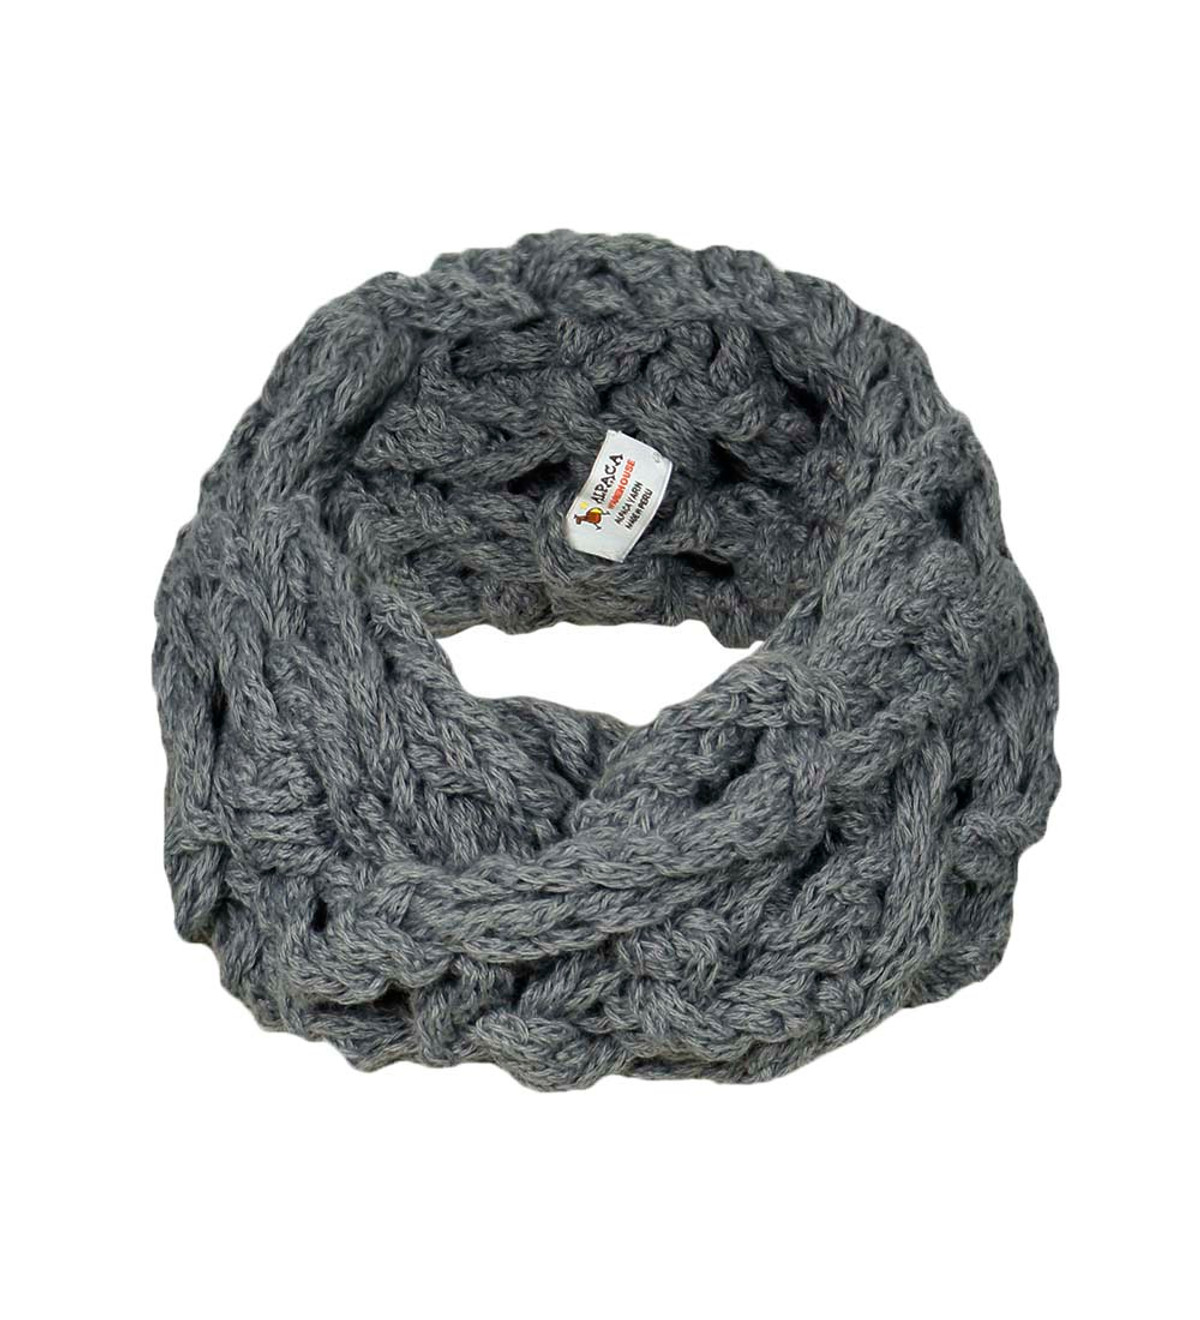 44047b0d62 Women's Alpaca Wool Blend Winter Handknitted Soft Warm Infinity Two Round  Scarf Solid Color